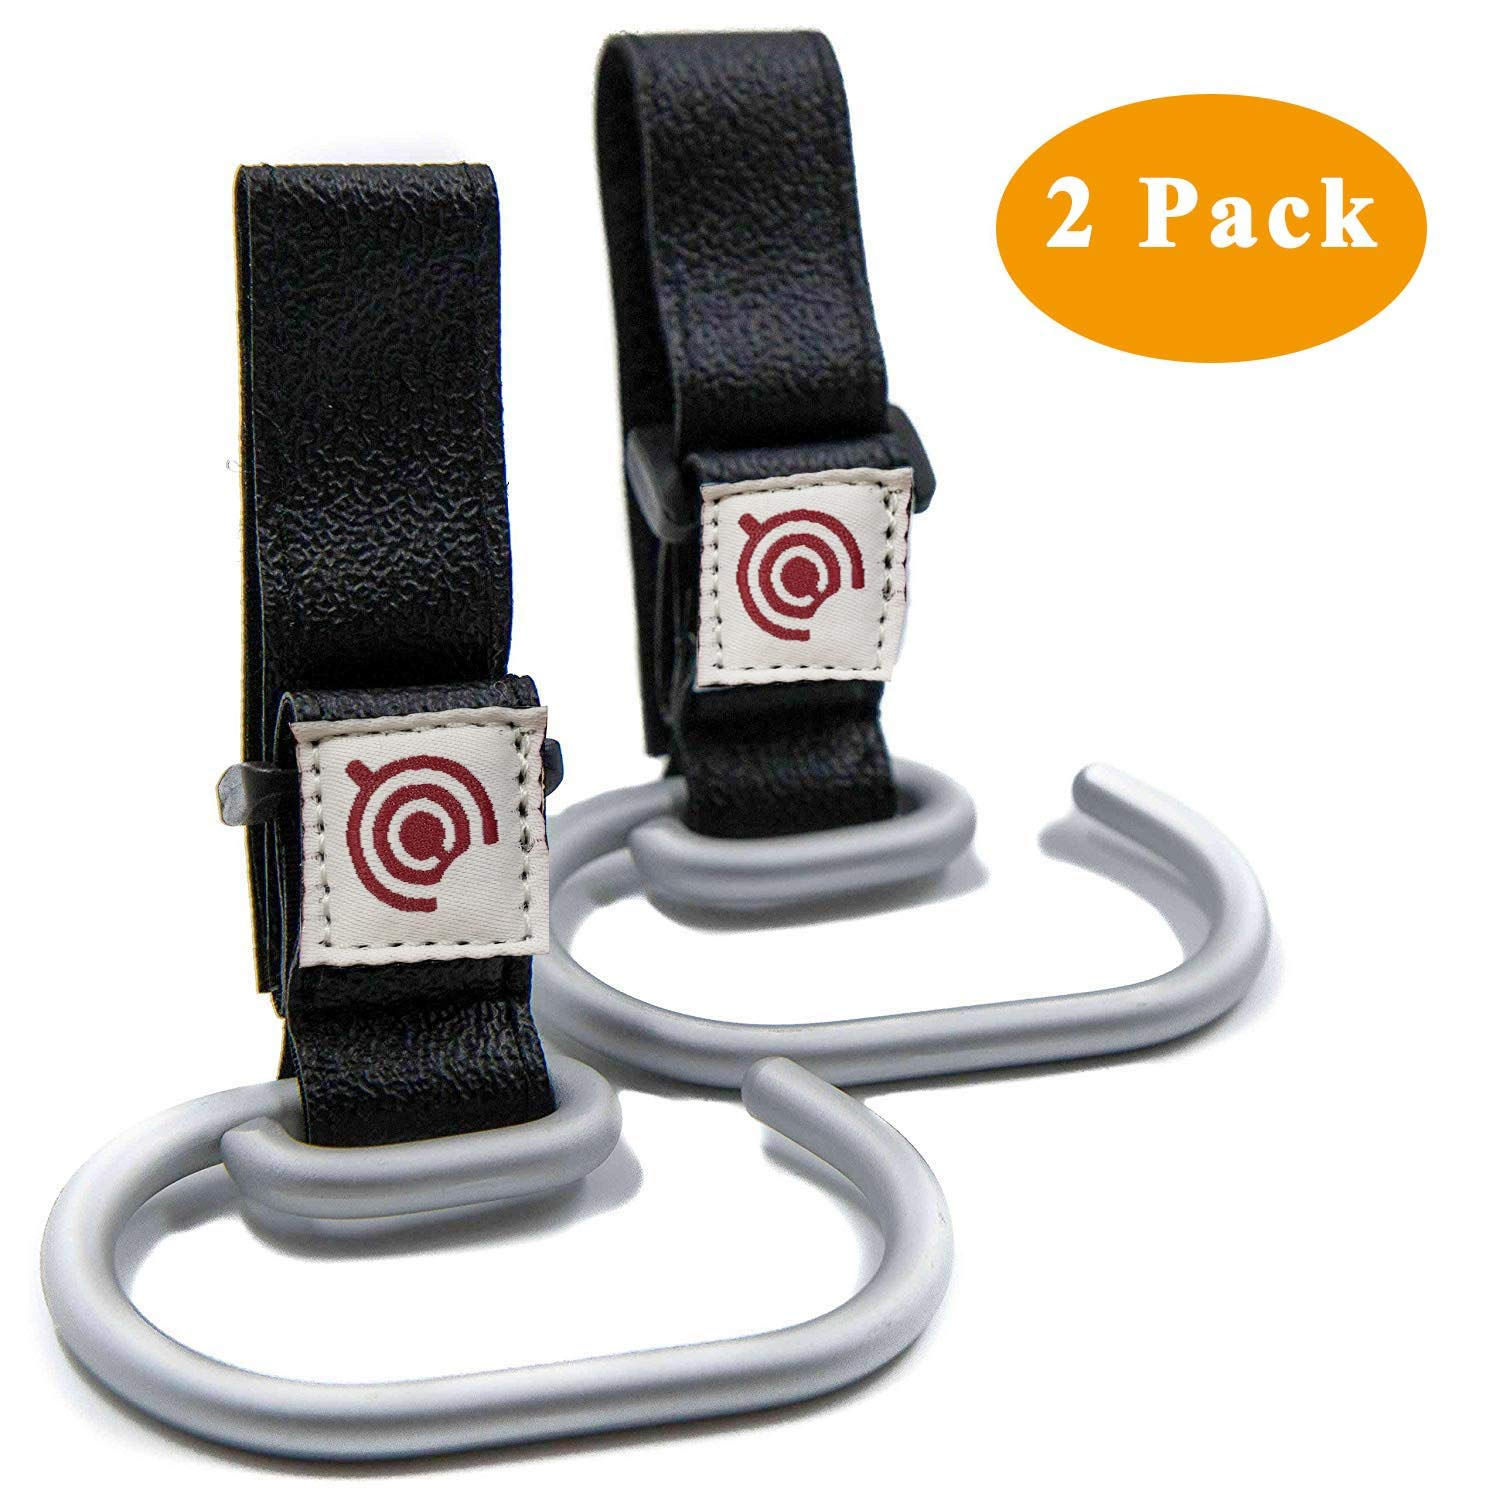 2 Pack Baby Stroller Hooks Universal Bags Clips  Durable Aluminum Stroller Holders for Attaching Shopping Bag, Diaper Changing Bag 71jfhGXY8ML